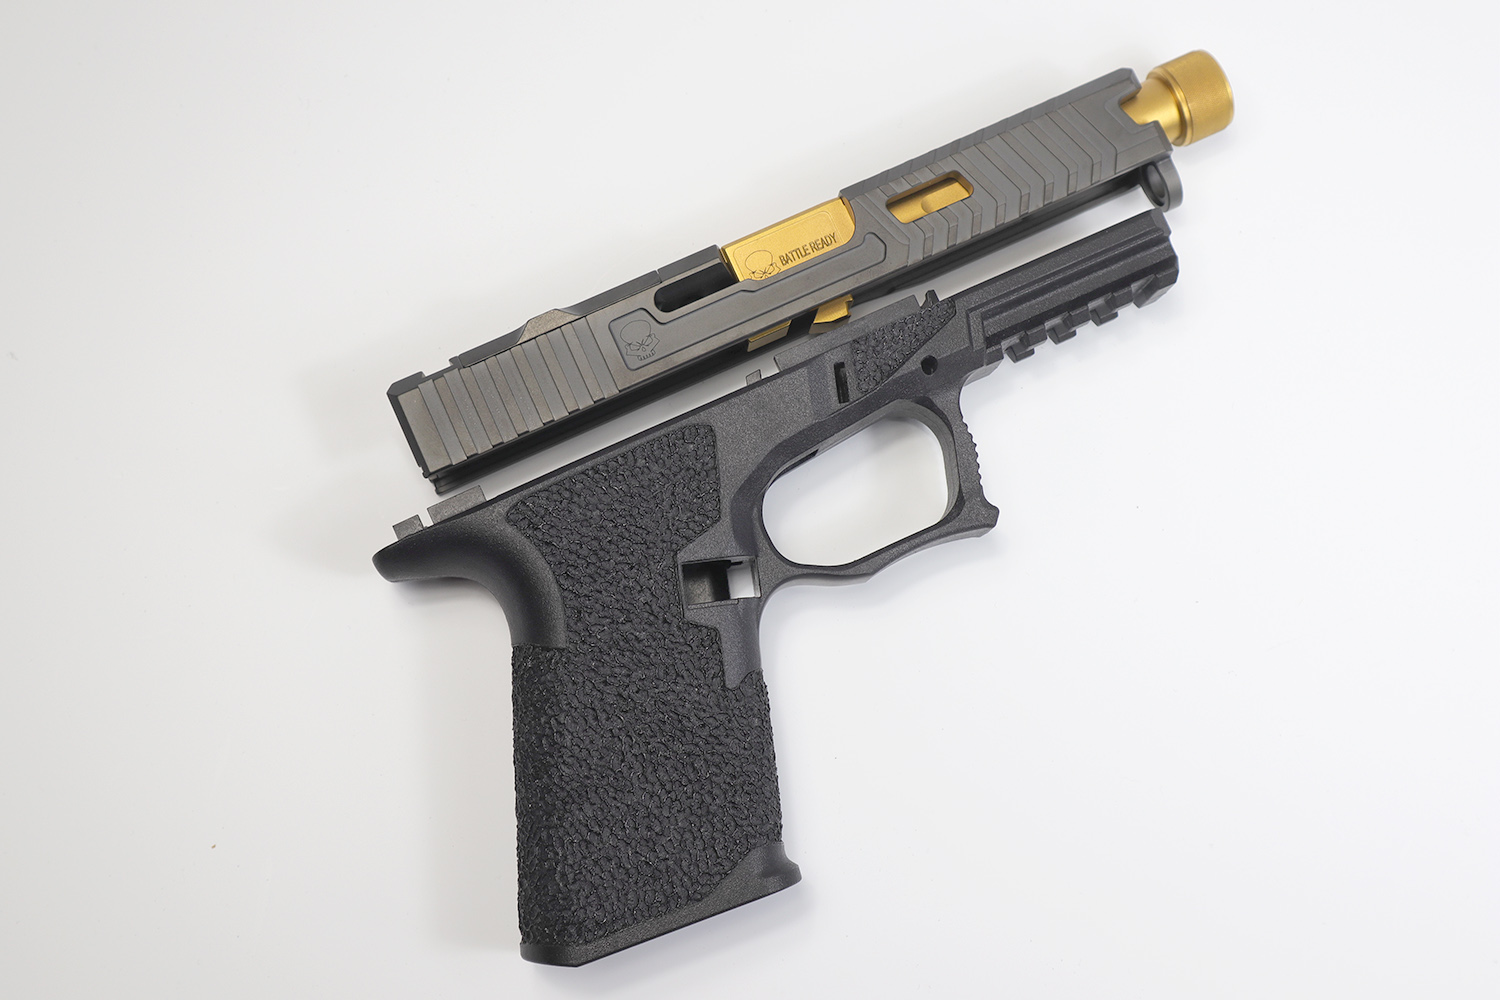 Polymer 80 Kit | Frame, Slide, & Barrel | Glock 19 80% Kit